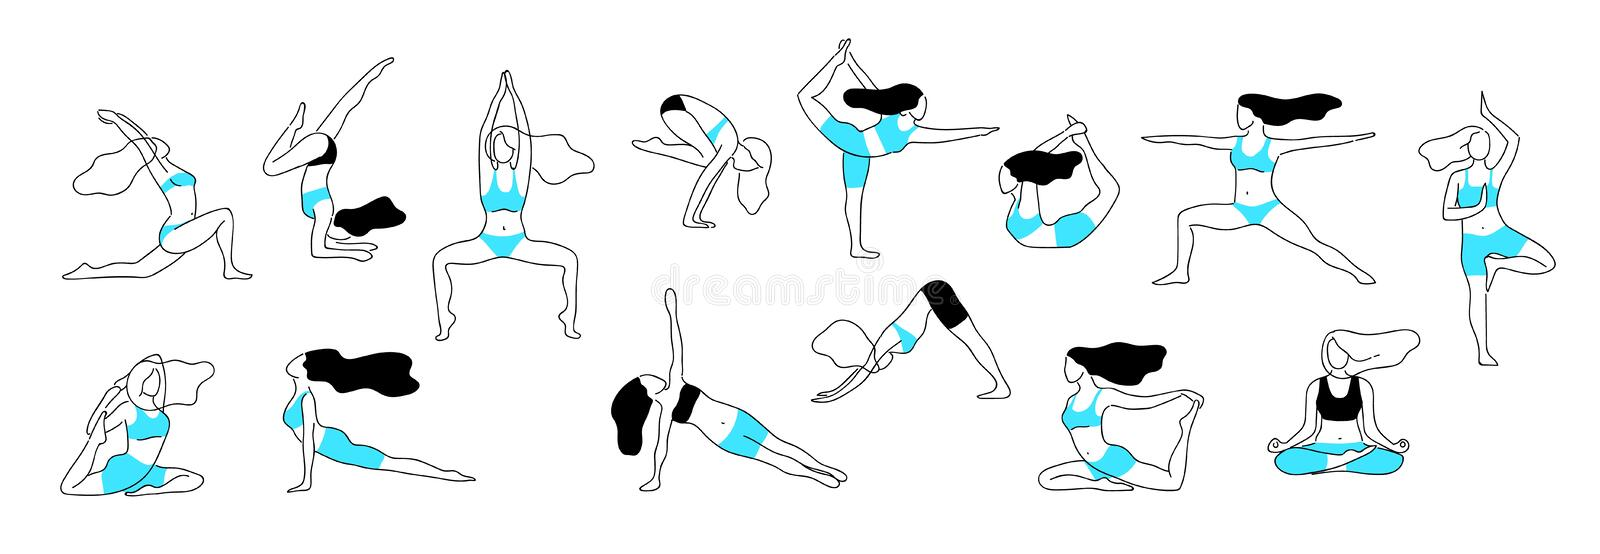 Girl yoga poses. Aerobic stretch fitness exercise, female body workout figure, healthy and flexibility vector line posture stock illustration